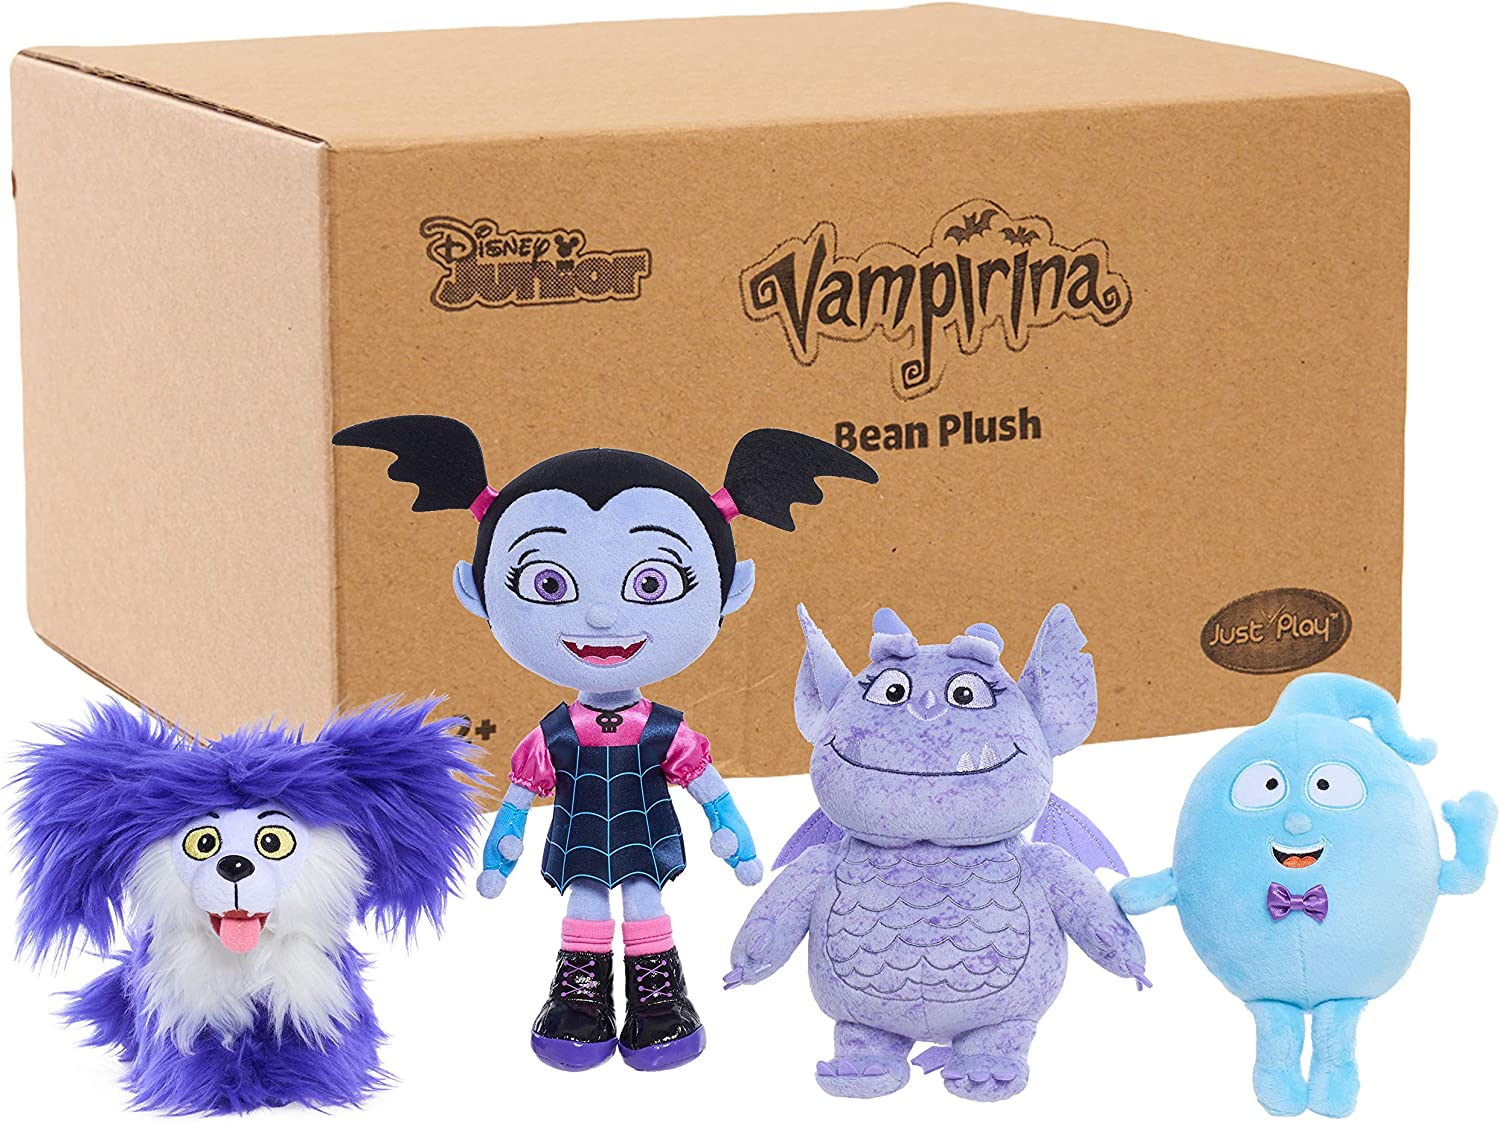 Vampirina Collector 4 Pack Bean Plush Dolls